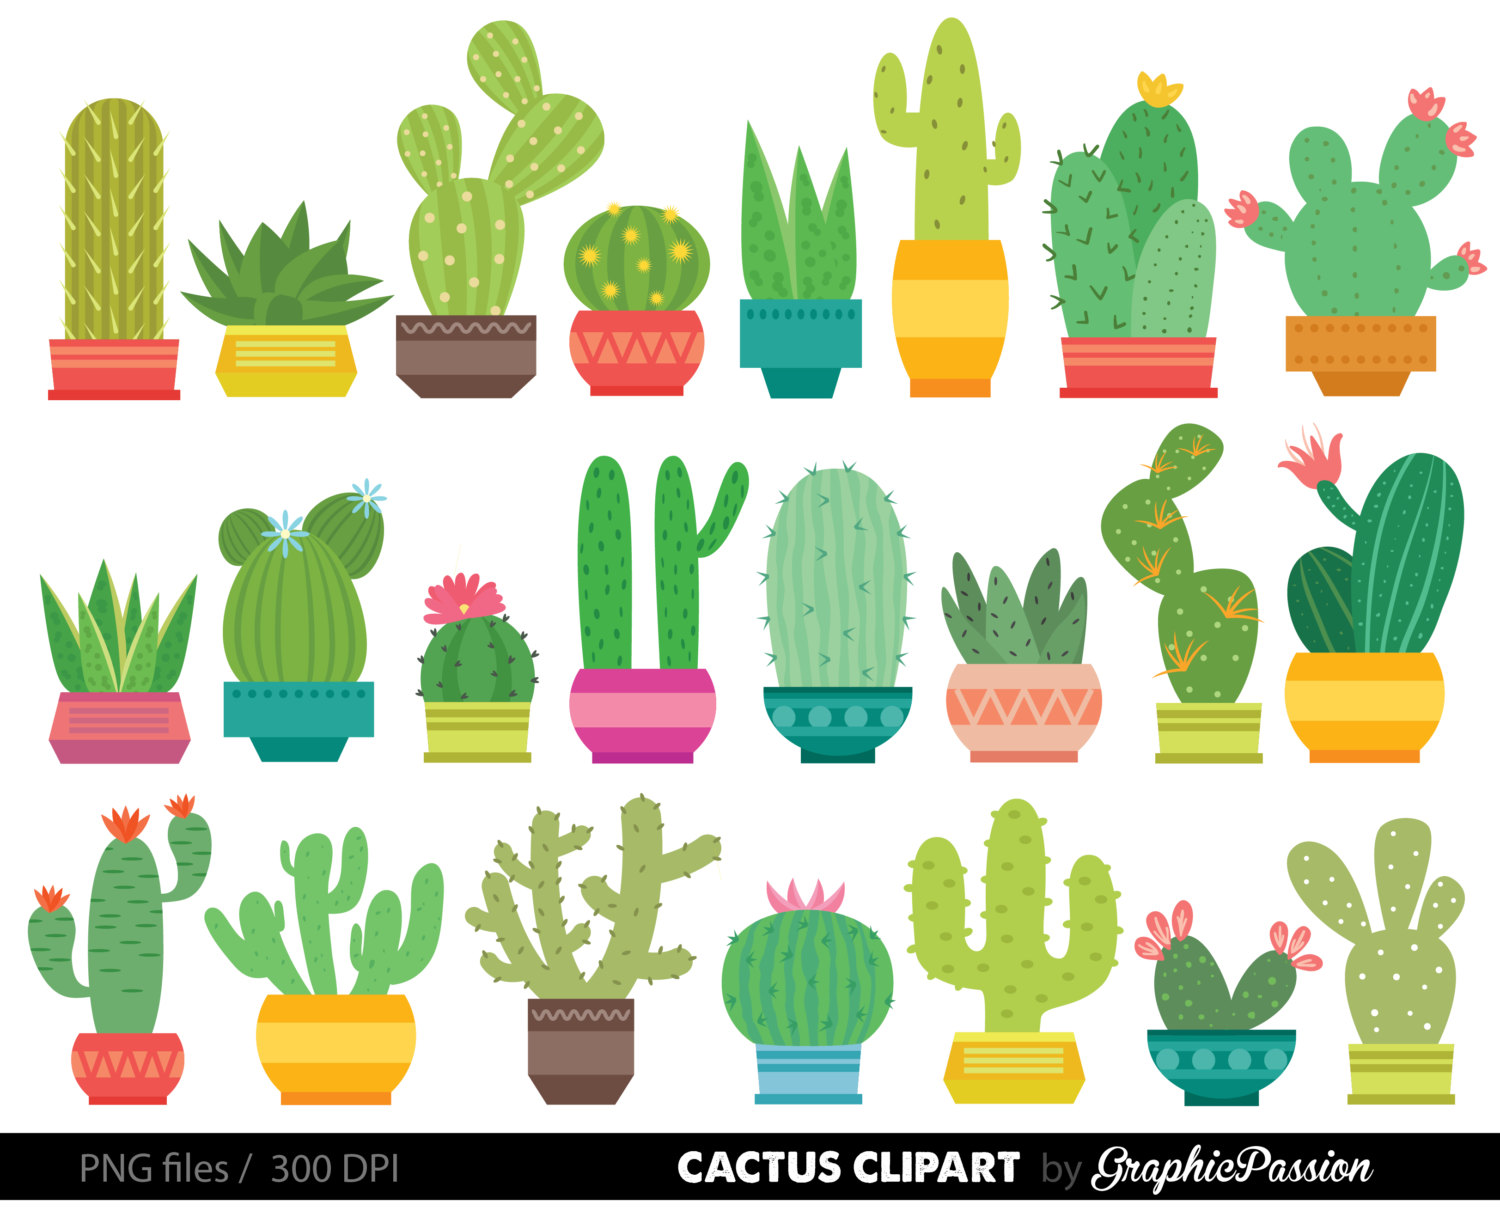 Graphics home . Cactus clipart